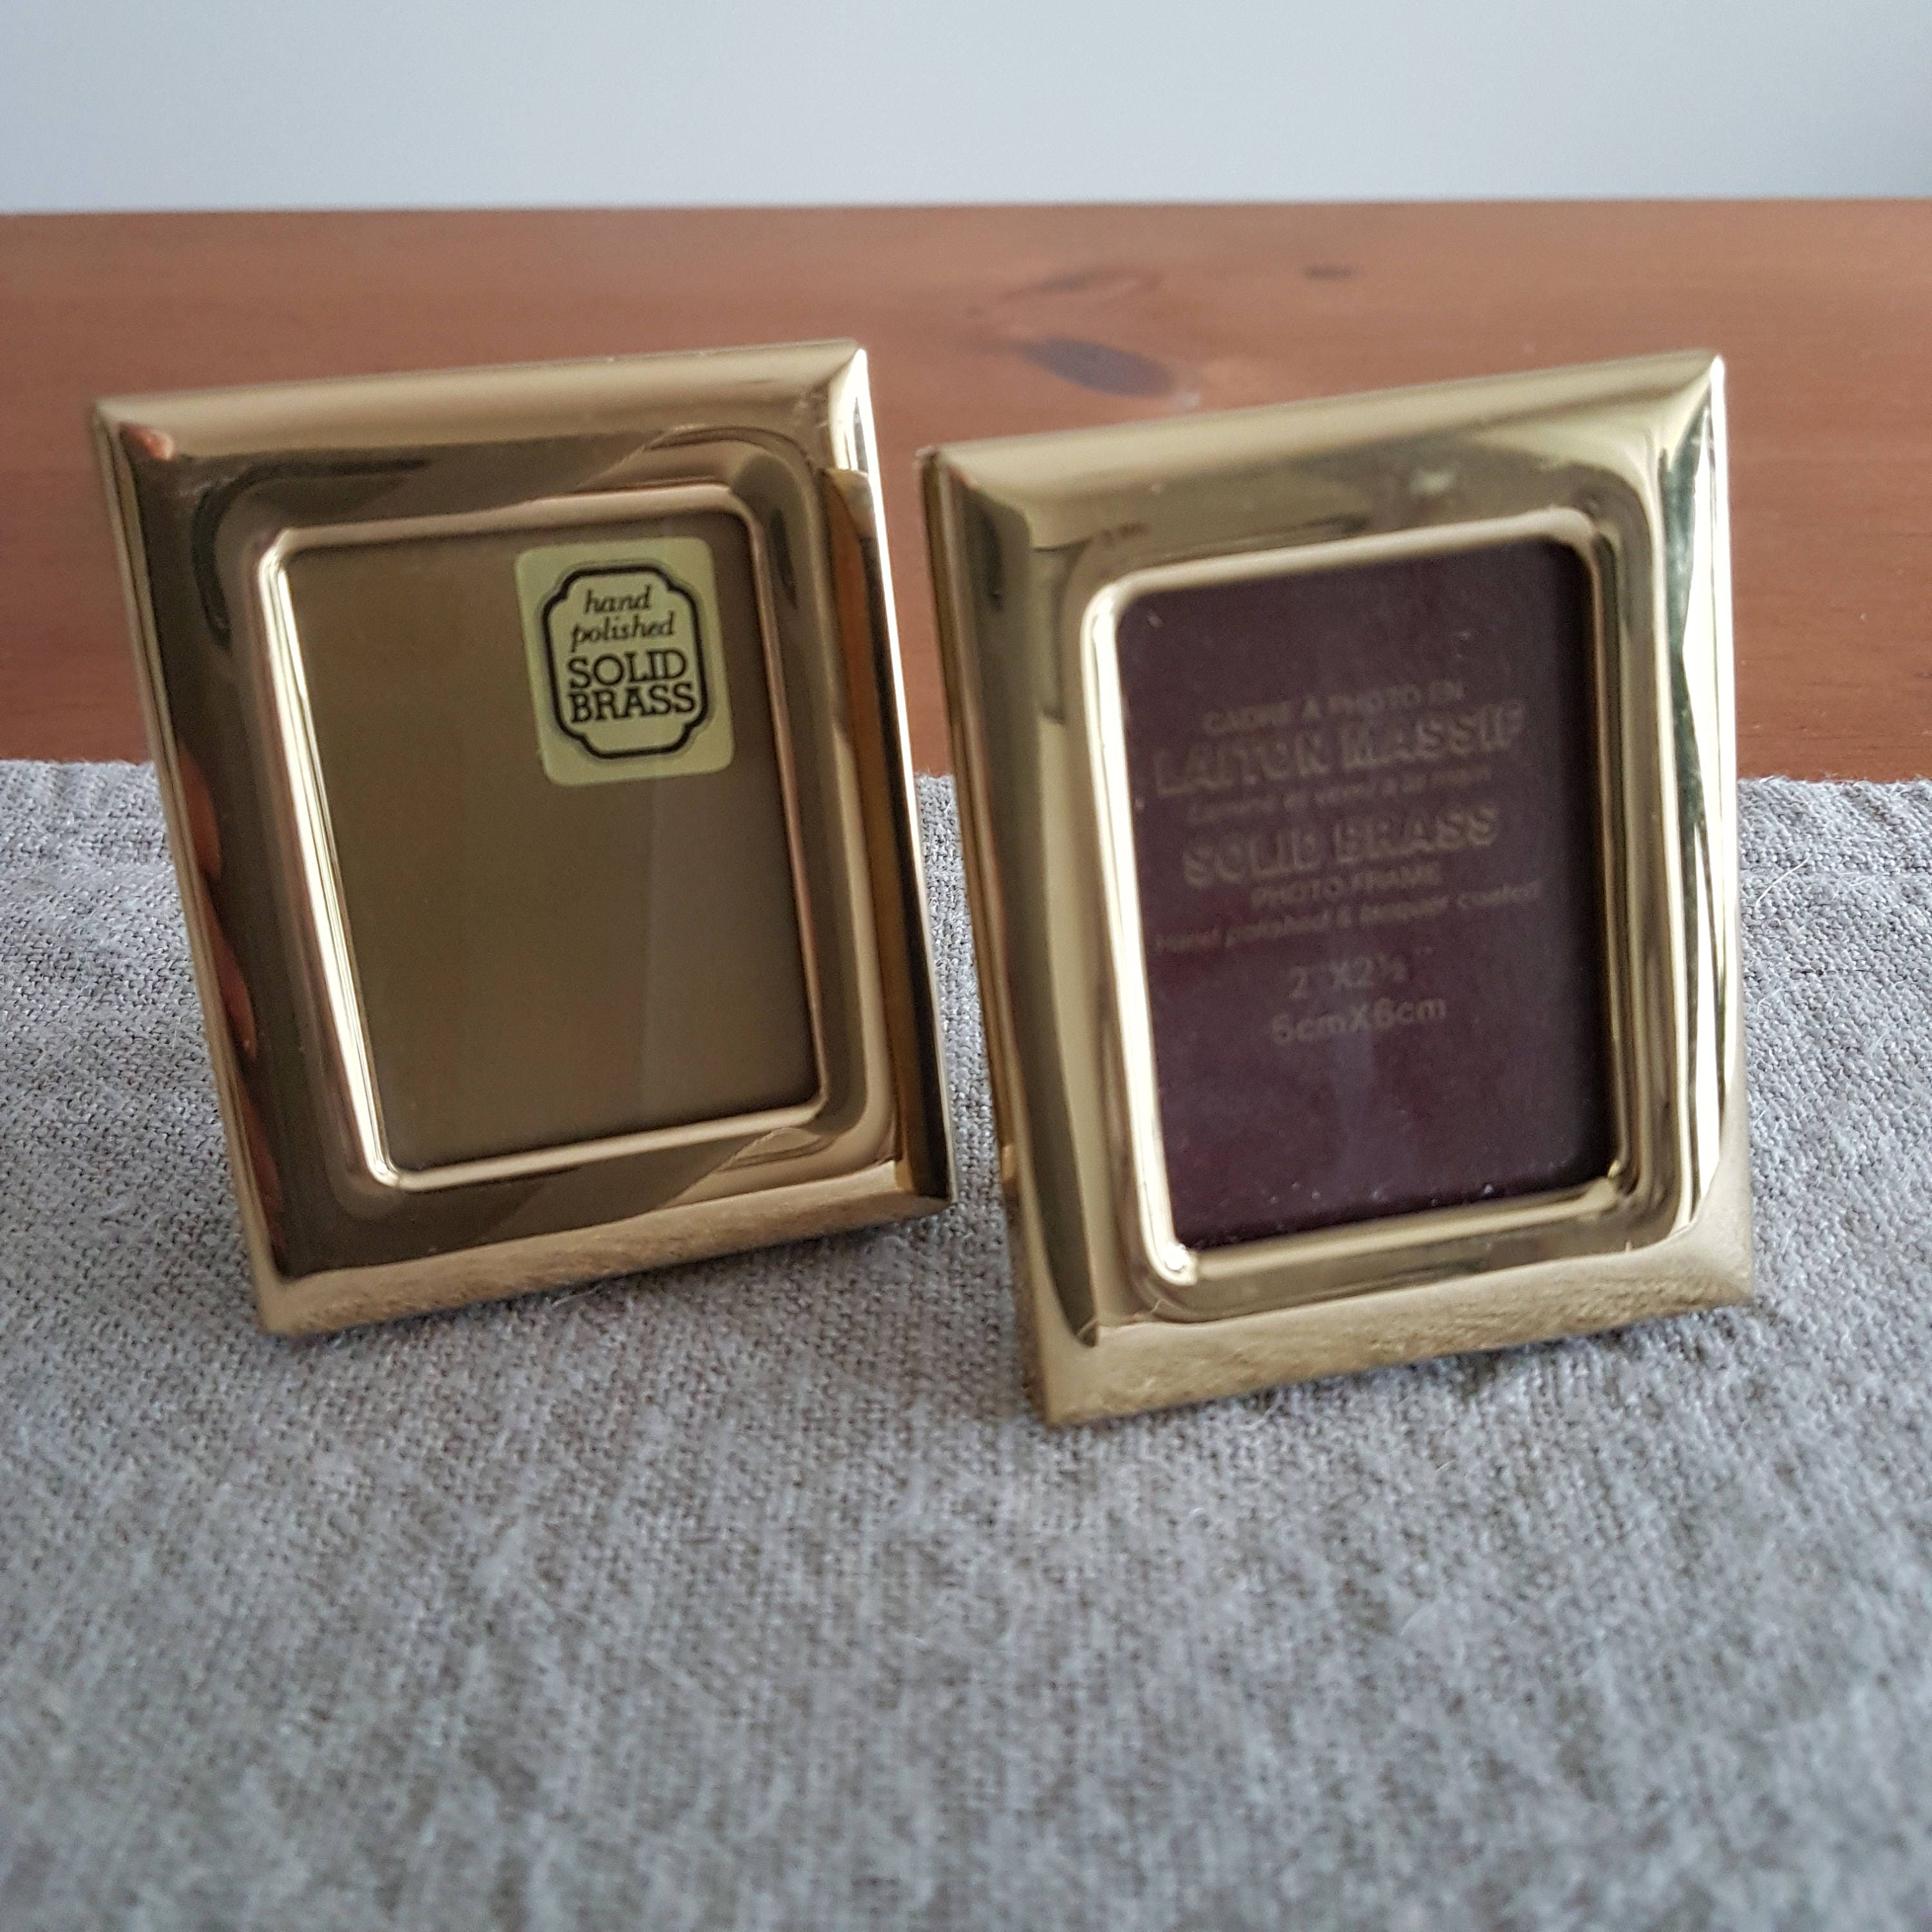 Lot of 2 miniature solid brass picture frames wallet size photos sold by bluechickenvintage jeuxipadfo Images